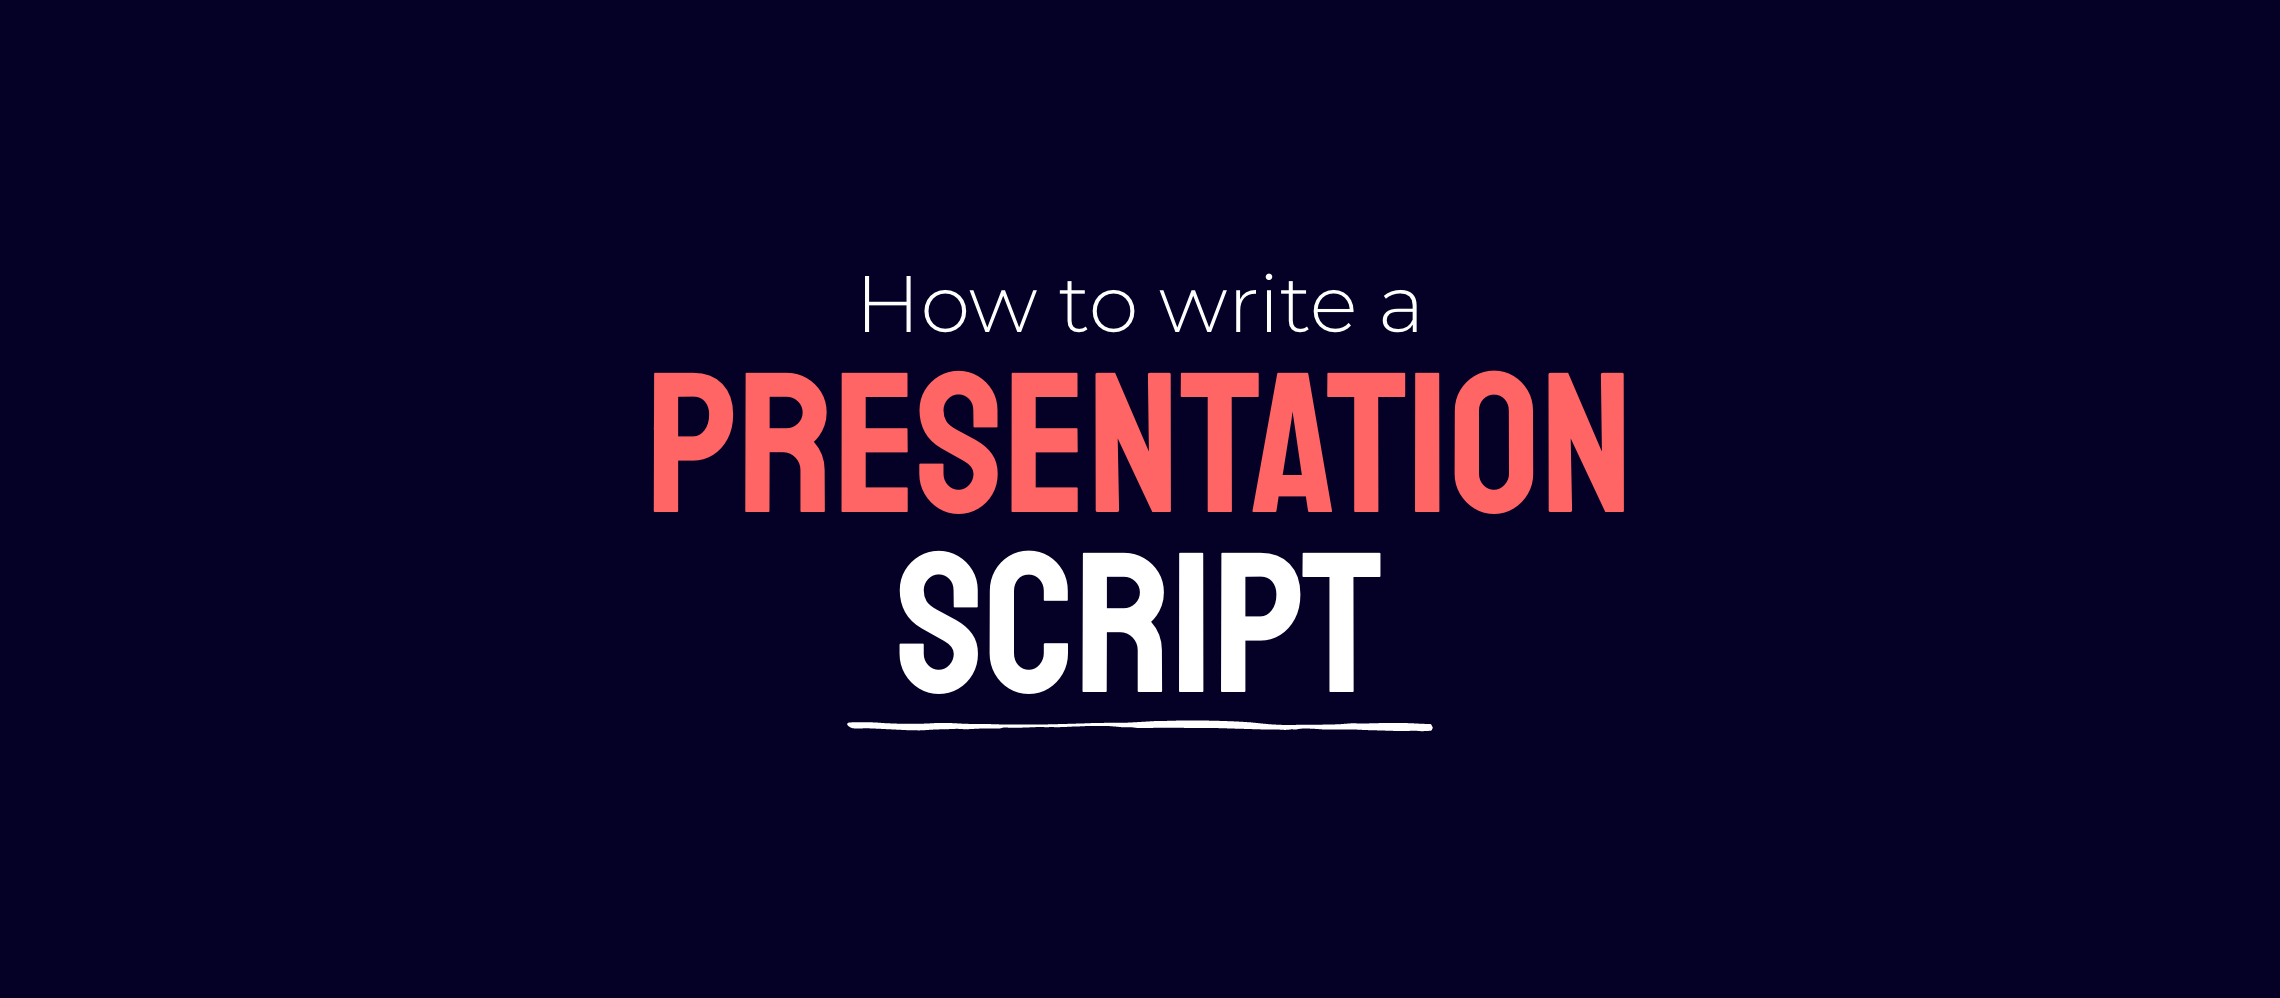 How to write a presentation script that helps you connect with your audience